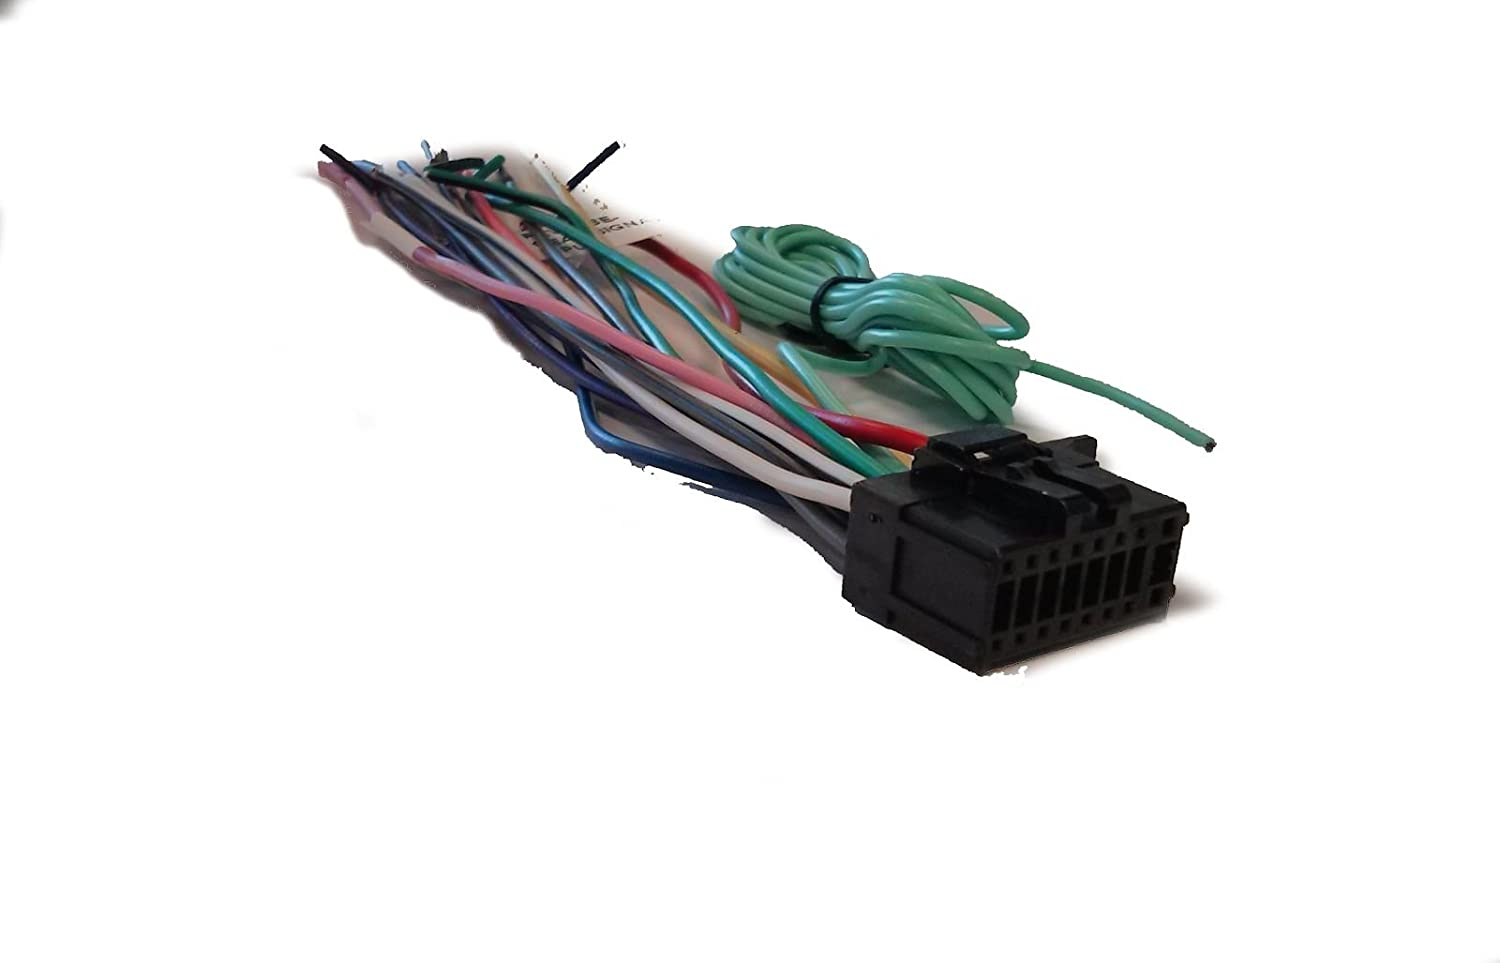 61s%2B2yUu BL._SL1500_ amazon com pioneer wire harness for sph da210 sph da100 sph da200 wiring harness pioneer deh 14ub at honlapkeszites.co